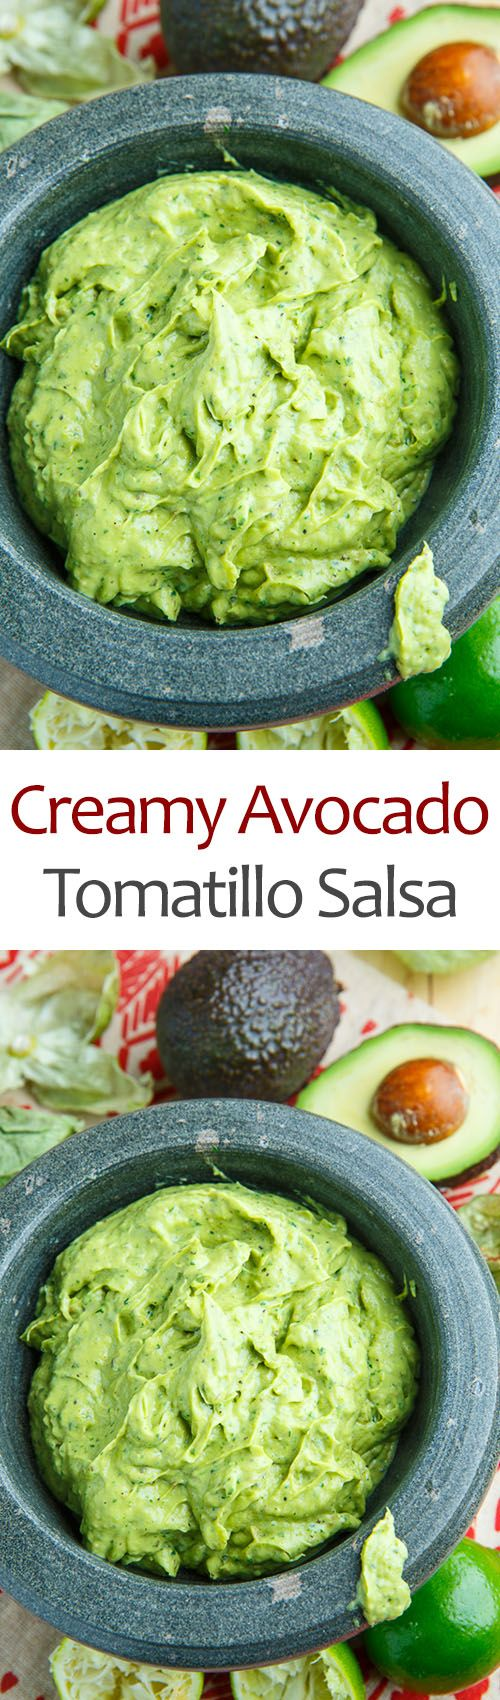 Creamy Avocado and Tomatillo Salsa